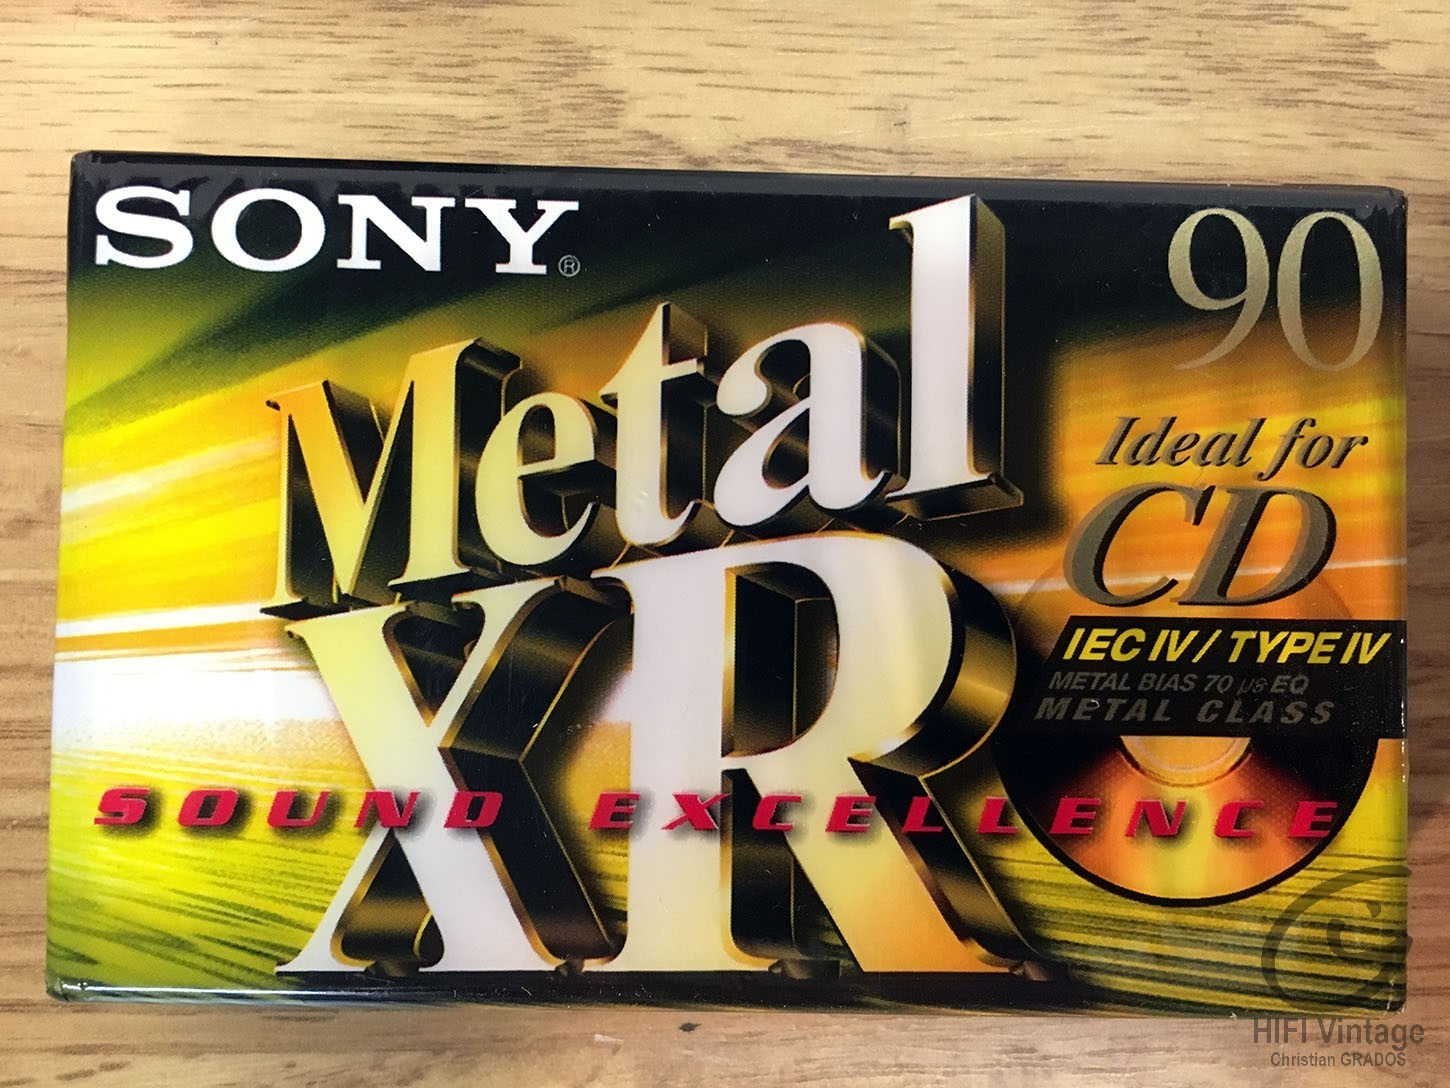 SONY XR-90 METAL